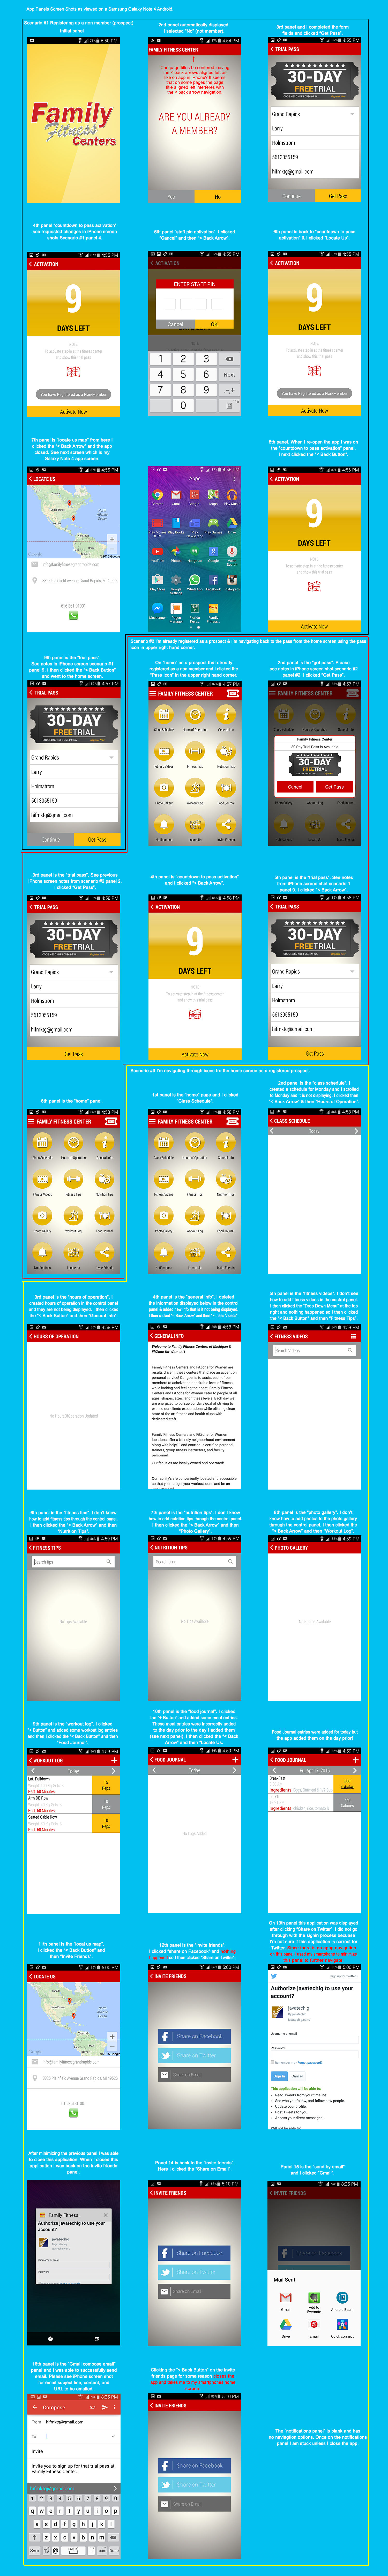 android-screen-shot-story-board-newest